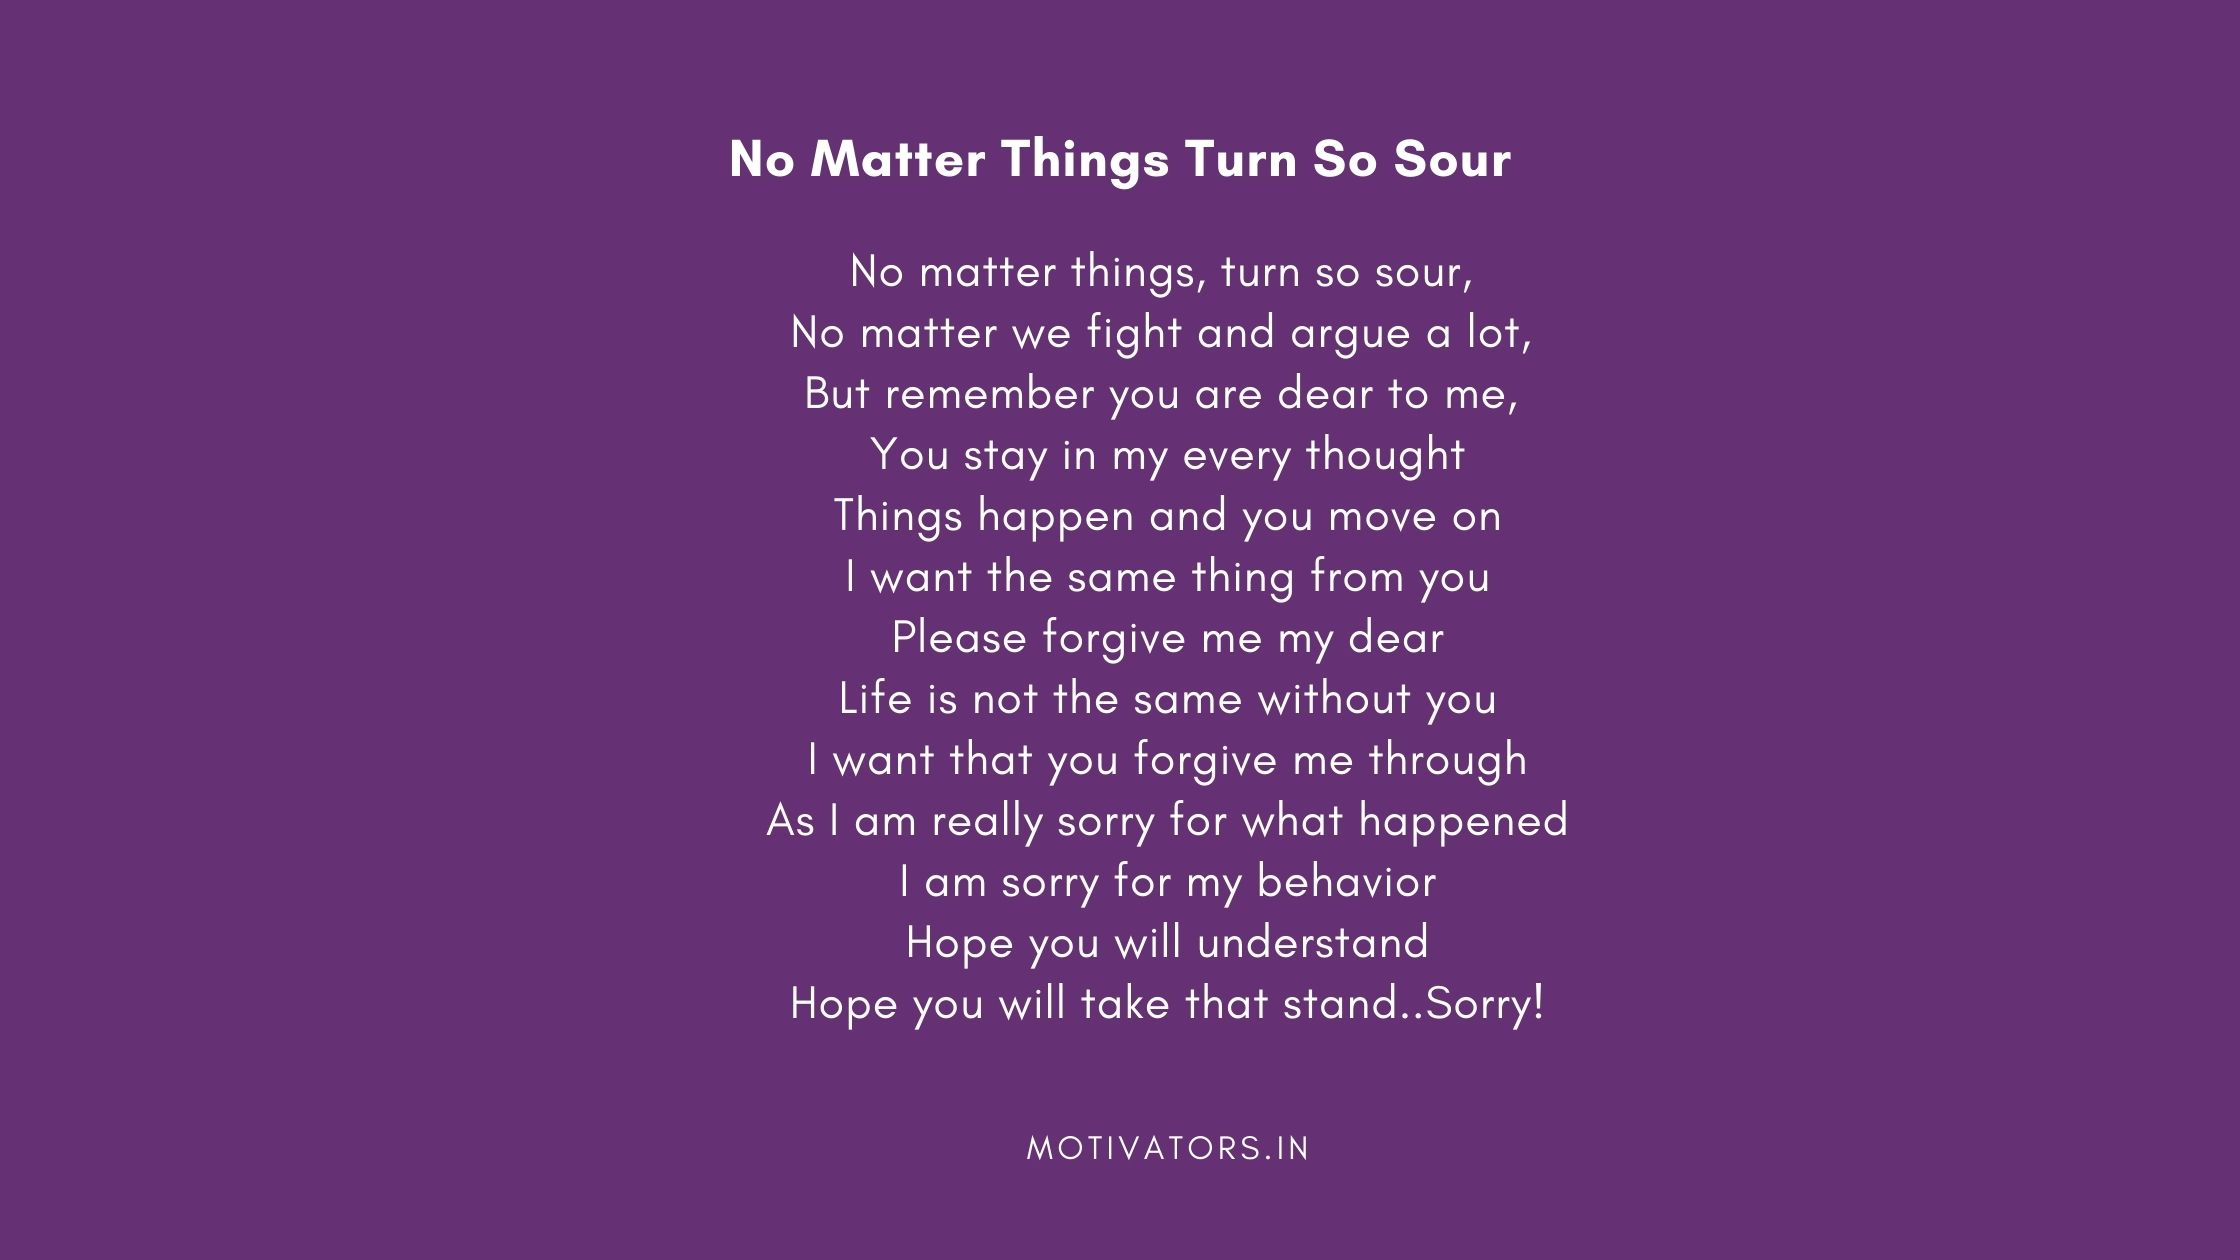 No Matter Things Turn So Sour